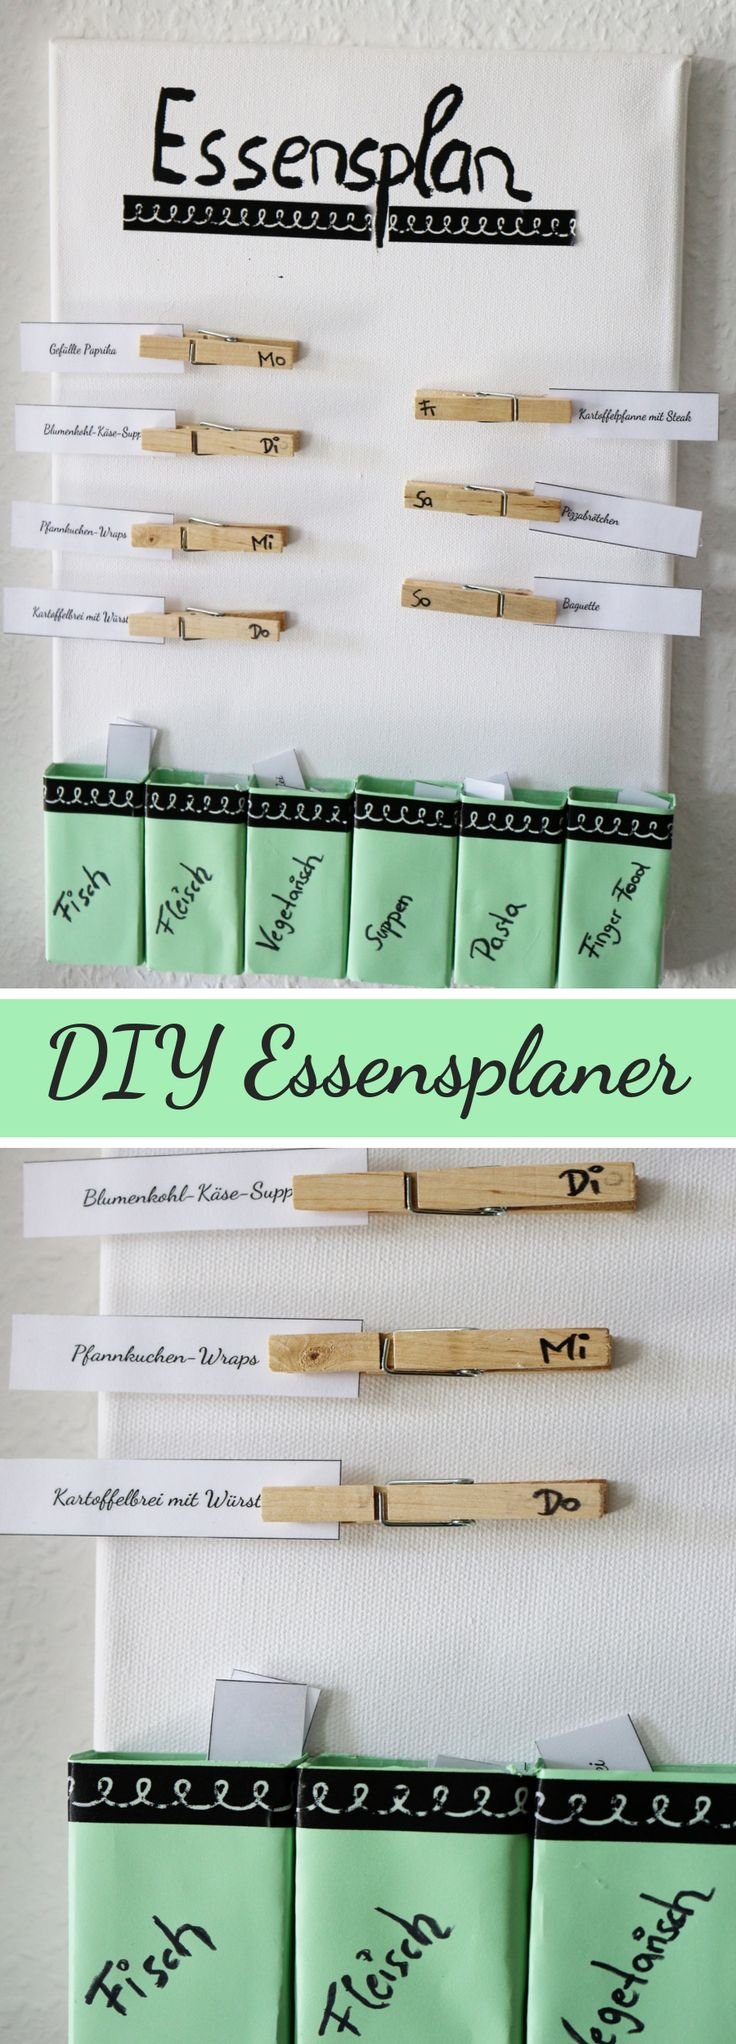 Creative food planner made by yourself | Tinker food planner | DIY household